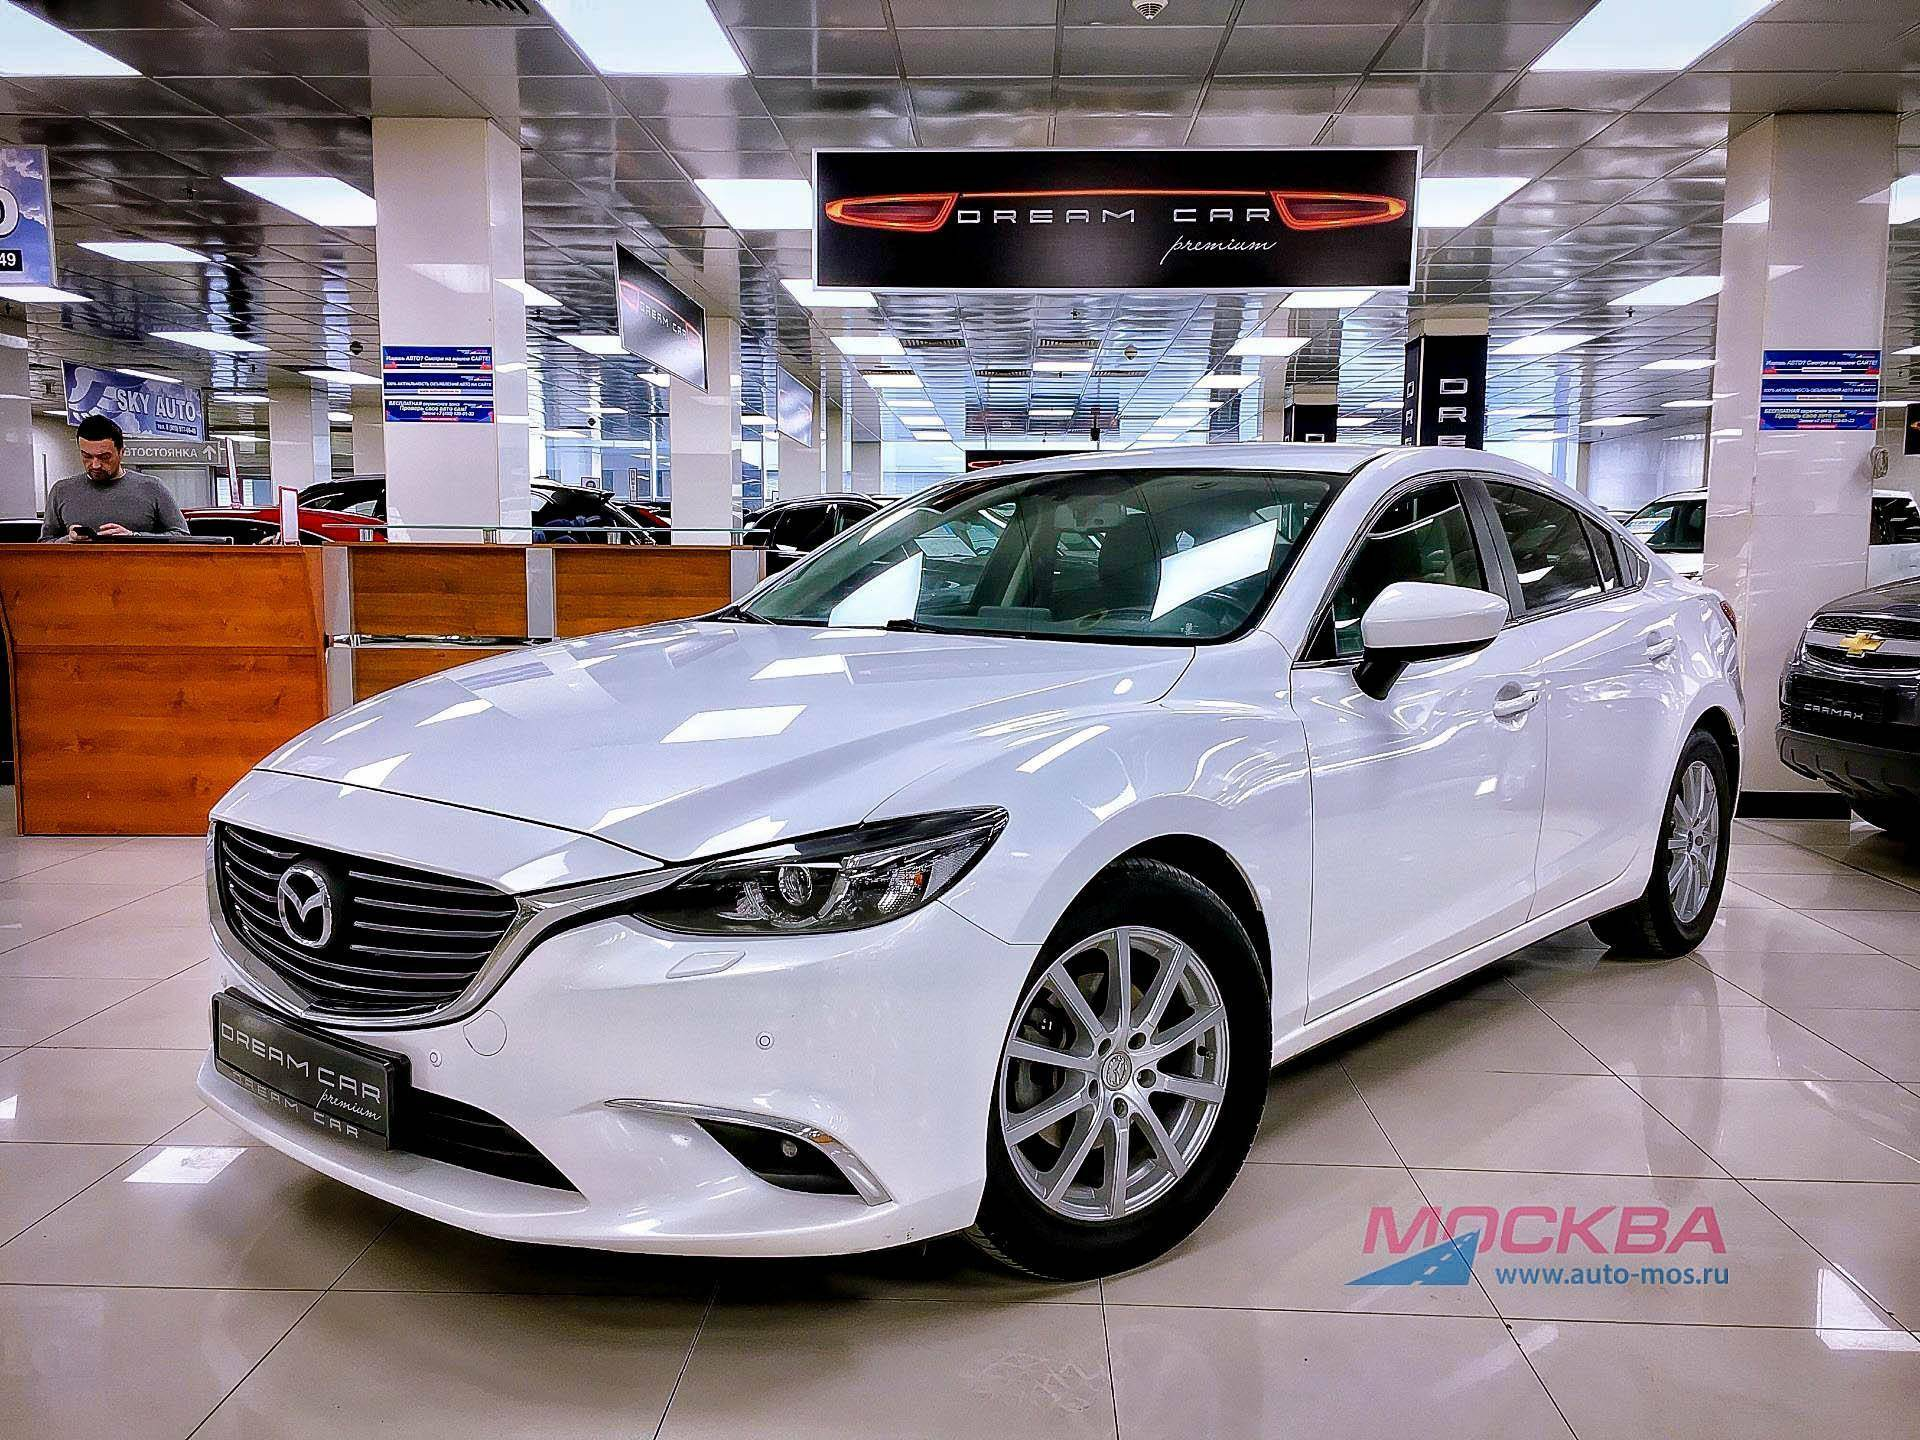 Обзор Mazda 6, 2.5 SKYACTIV-G AT (192 л.с.) 2015 год